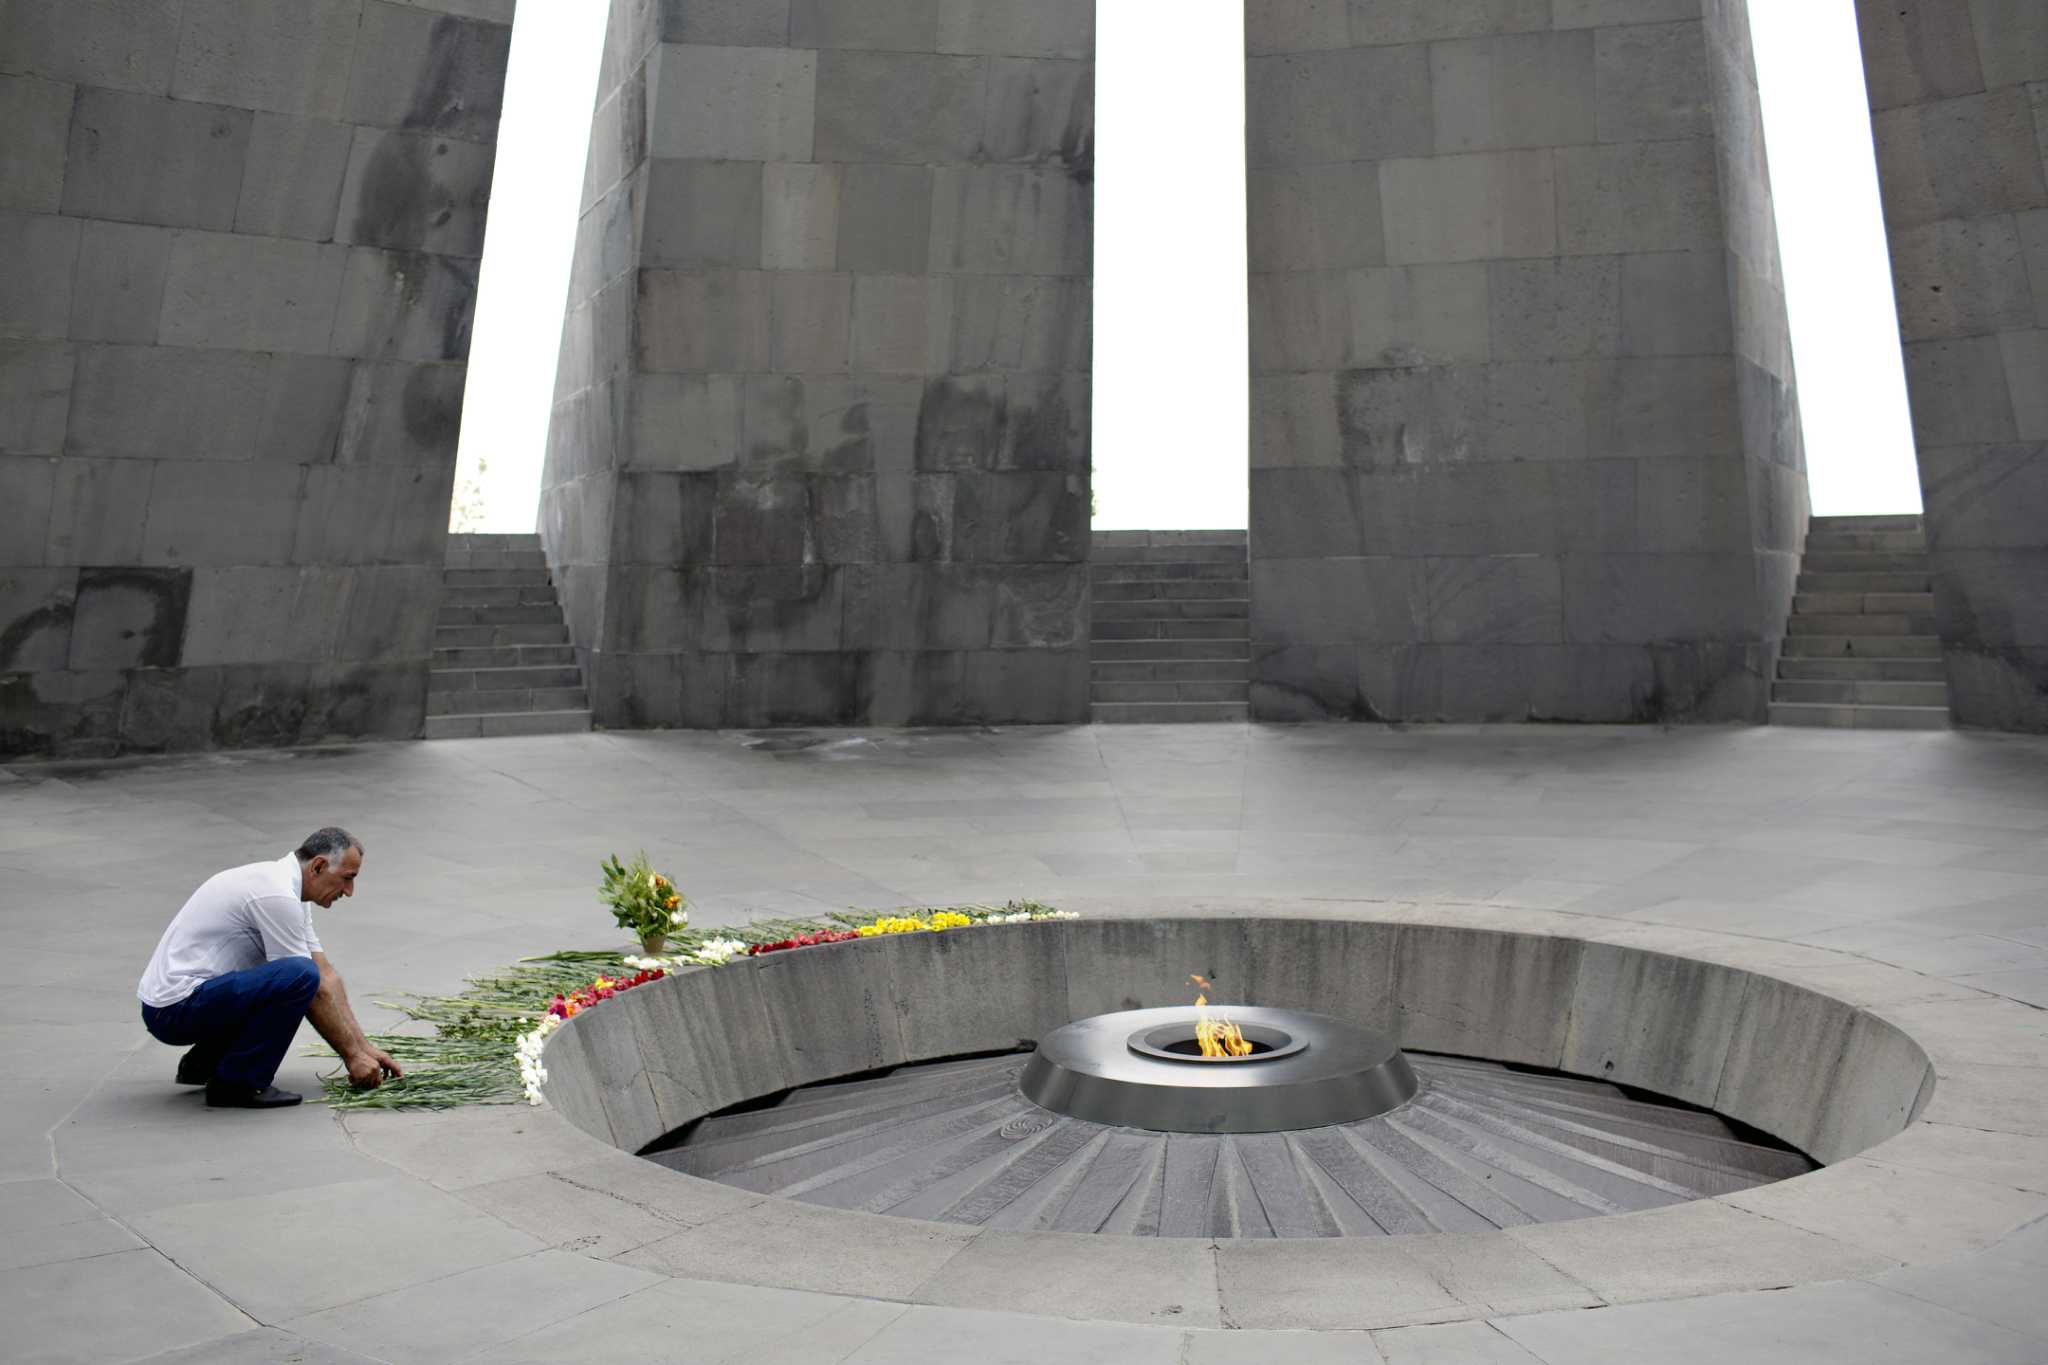 Opinion: It's time for Biden to say the words 'Armenian genocide'